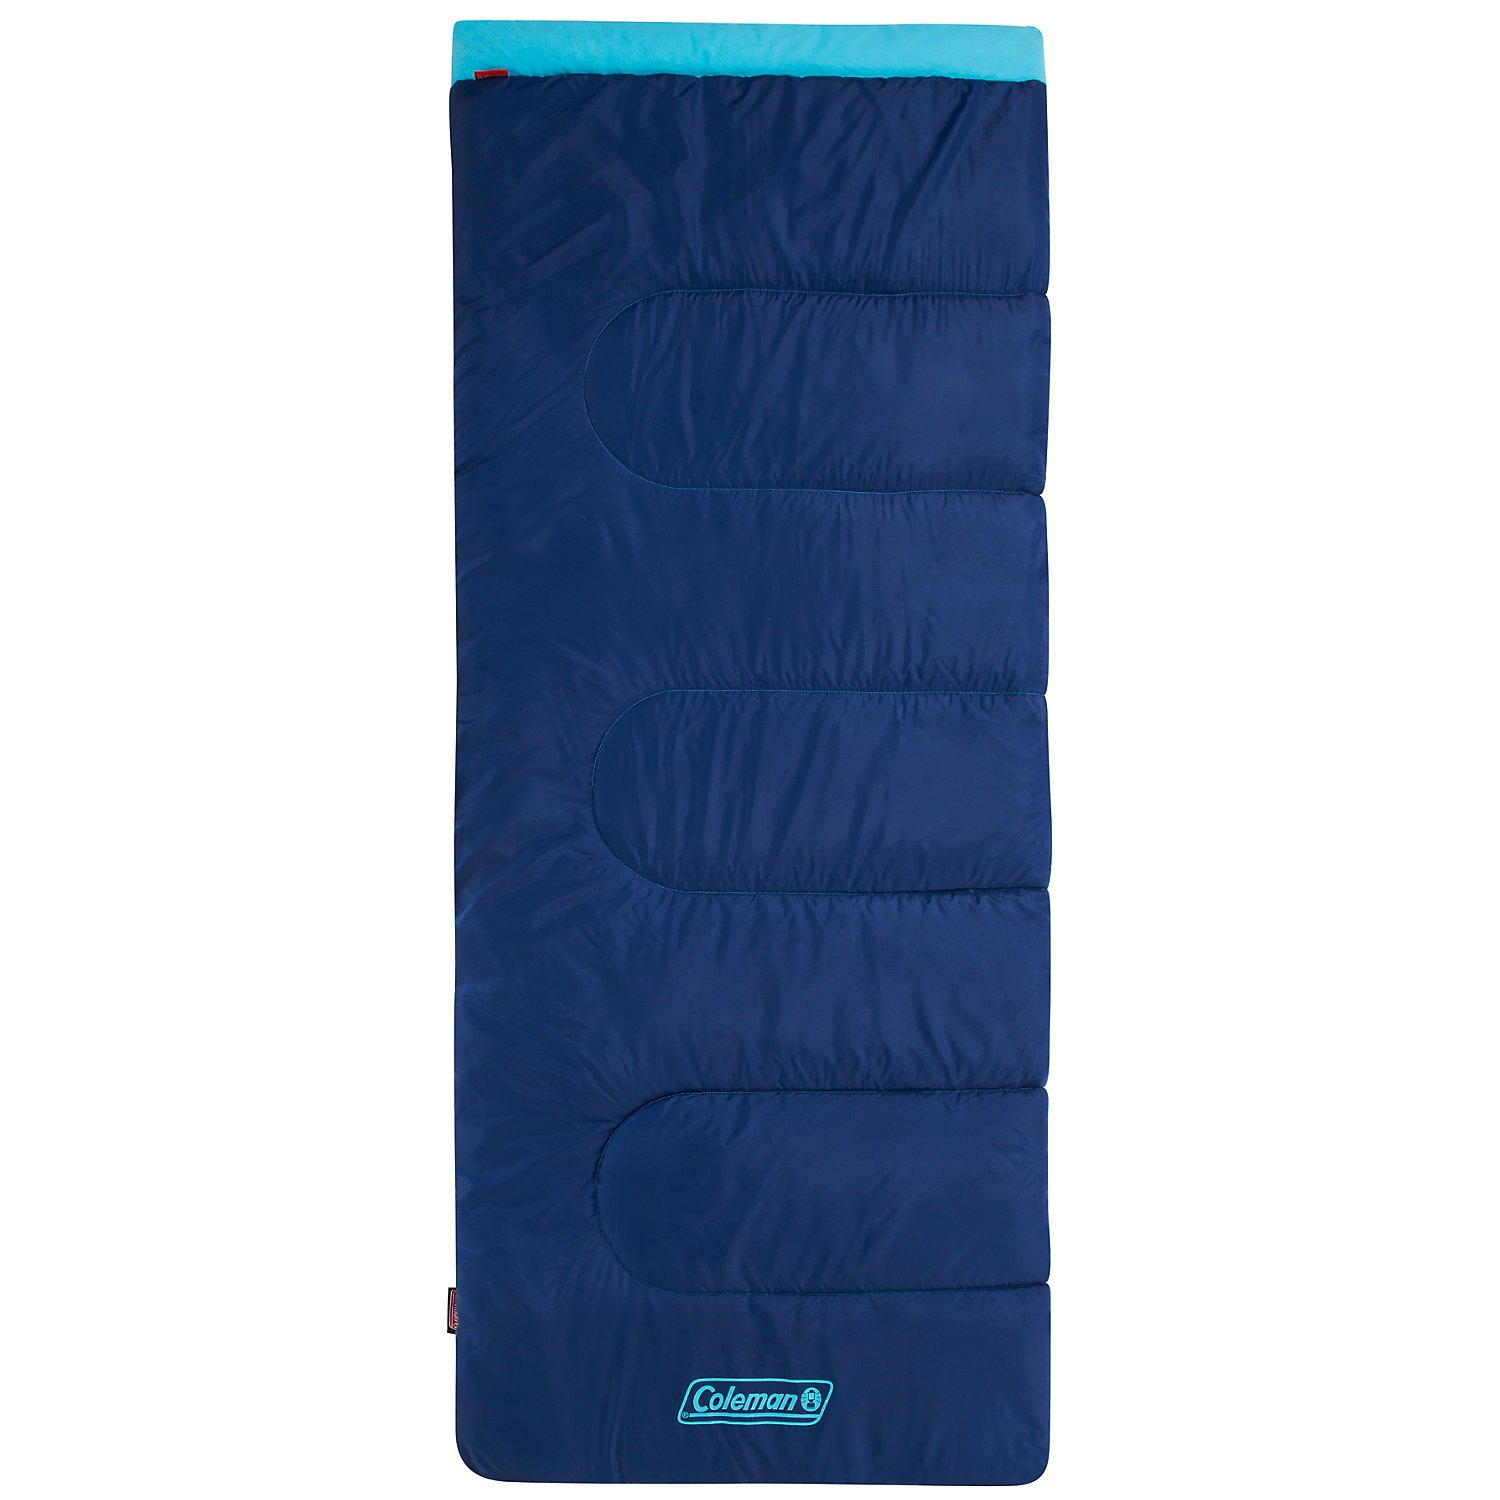 An image related to Coleman Heaton Peak 2000020996 Cotton Flannel Sleeping Bag